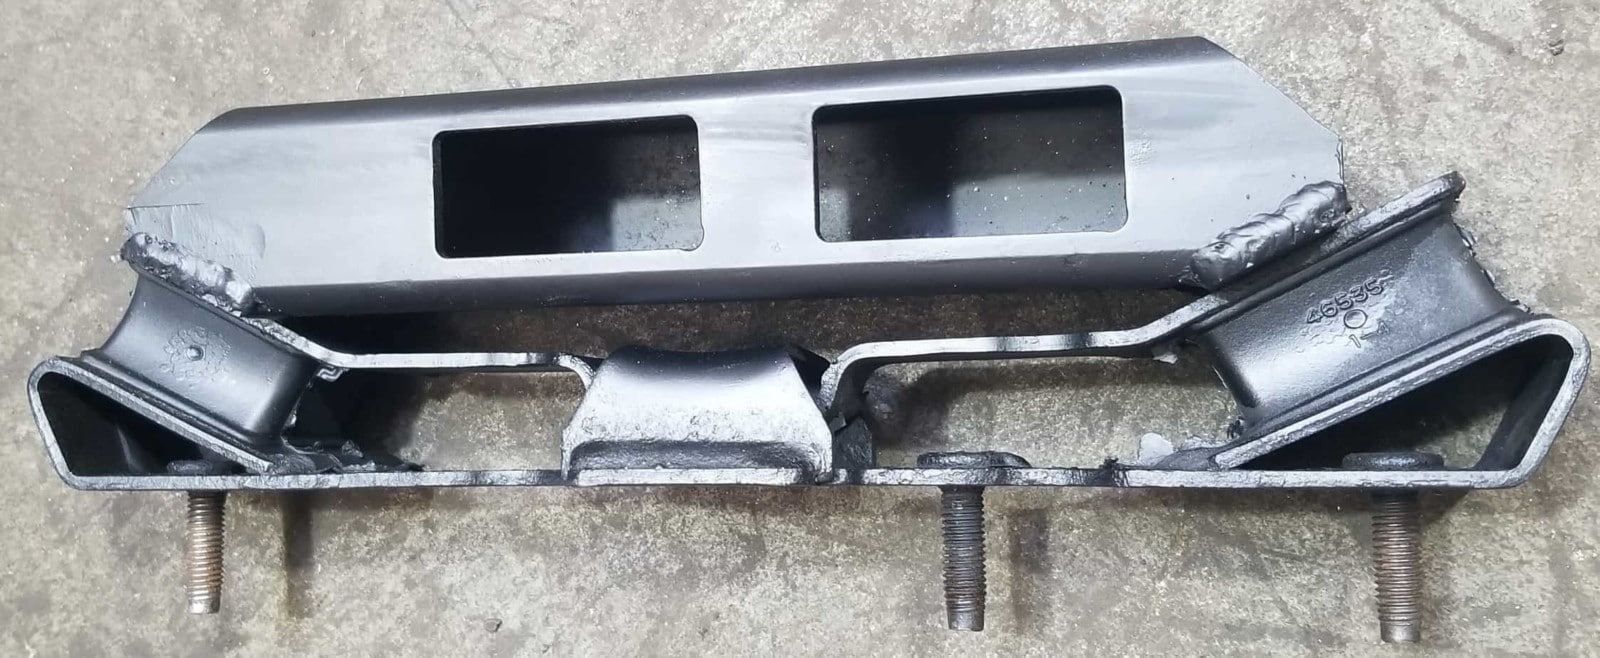 TR4050 Transmission support bracket for Jeep JK